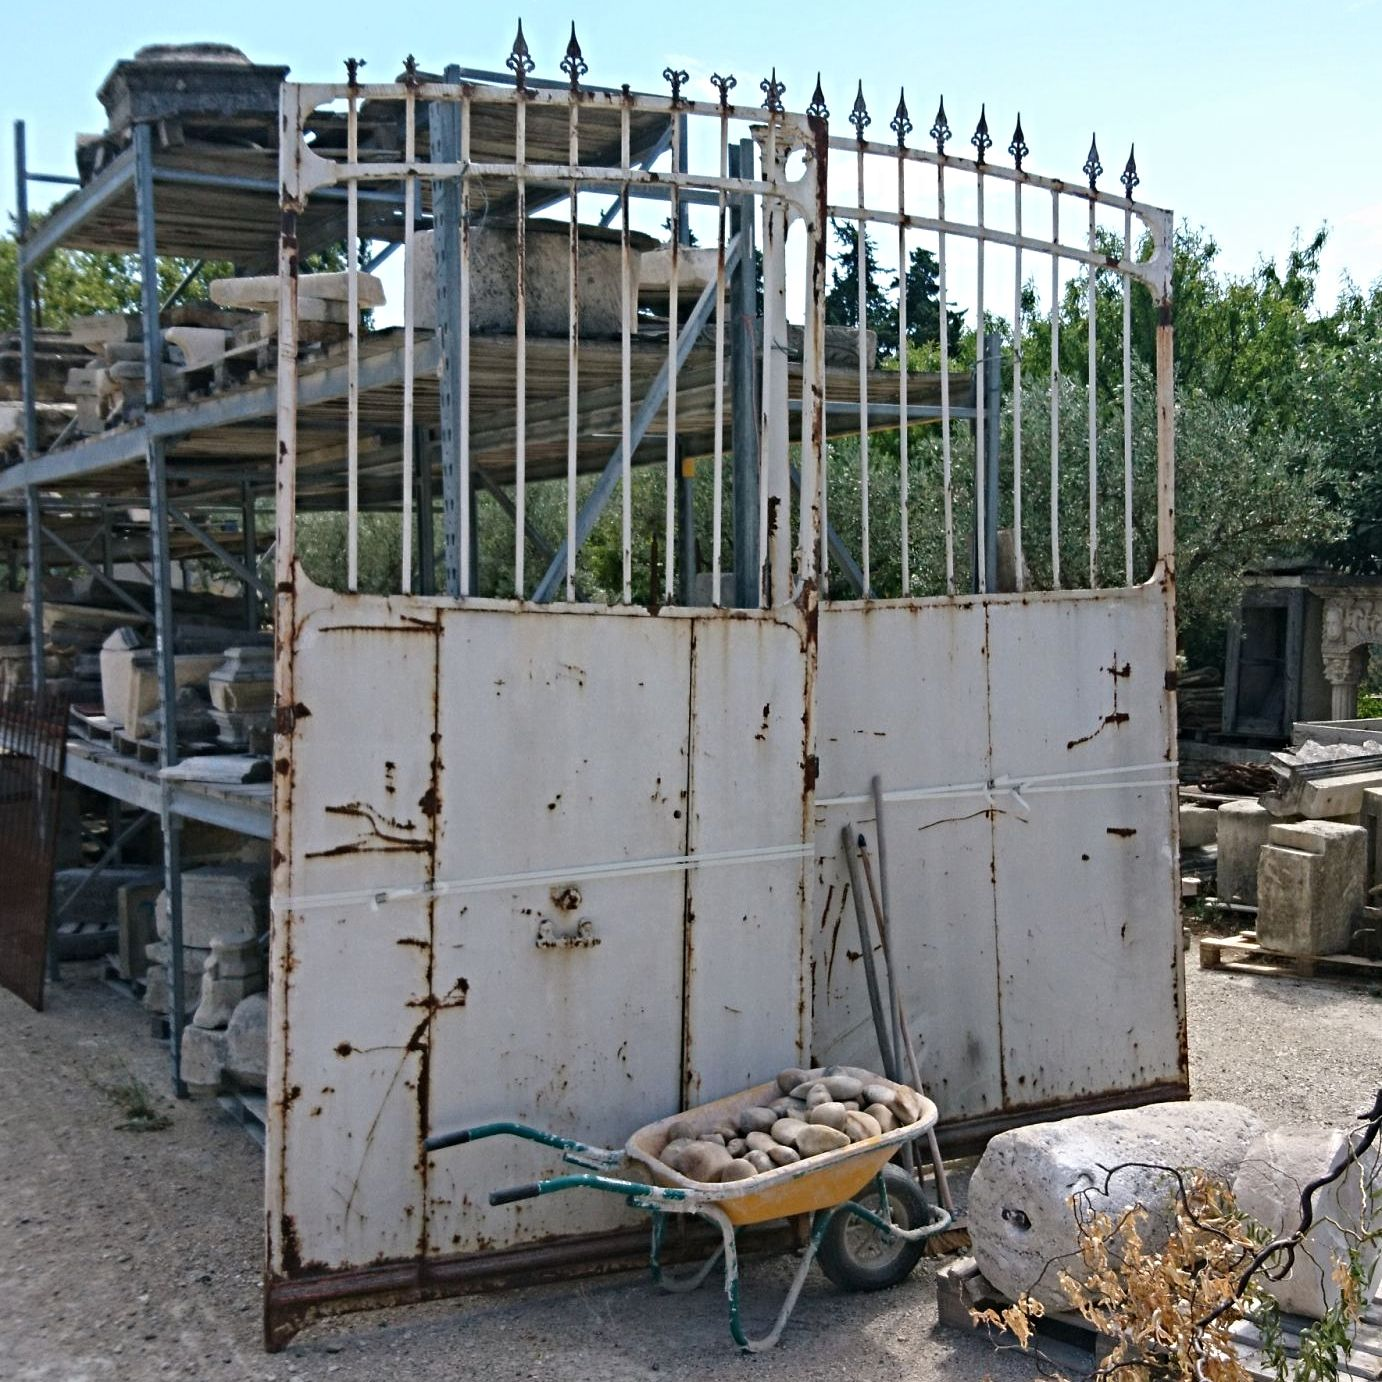 Antique gate : an old wrought iron gate with an old gate for easy access when you enter your property on foot or by bicycle.